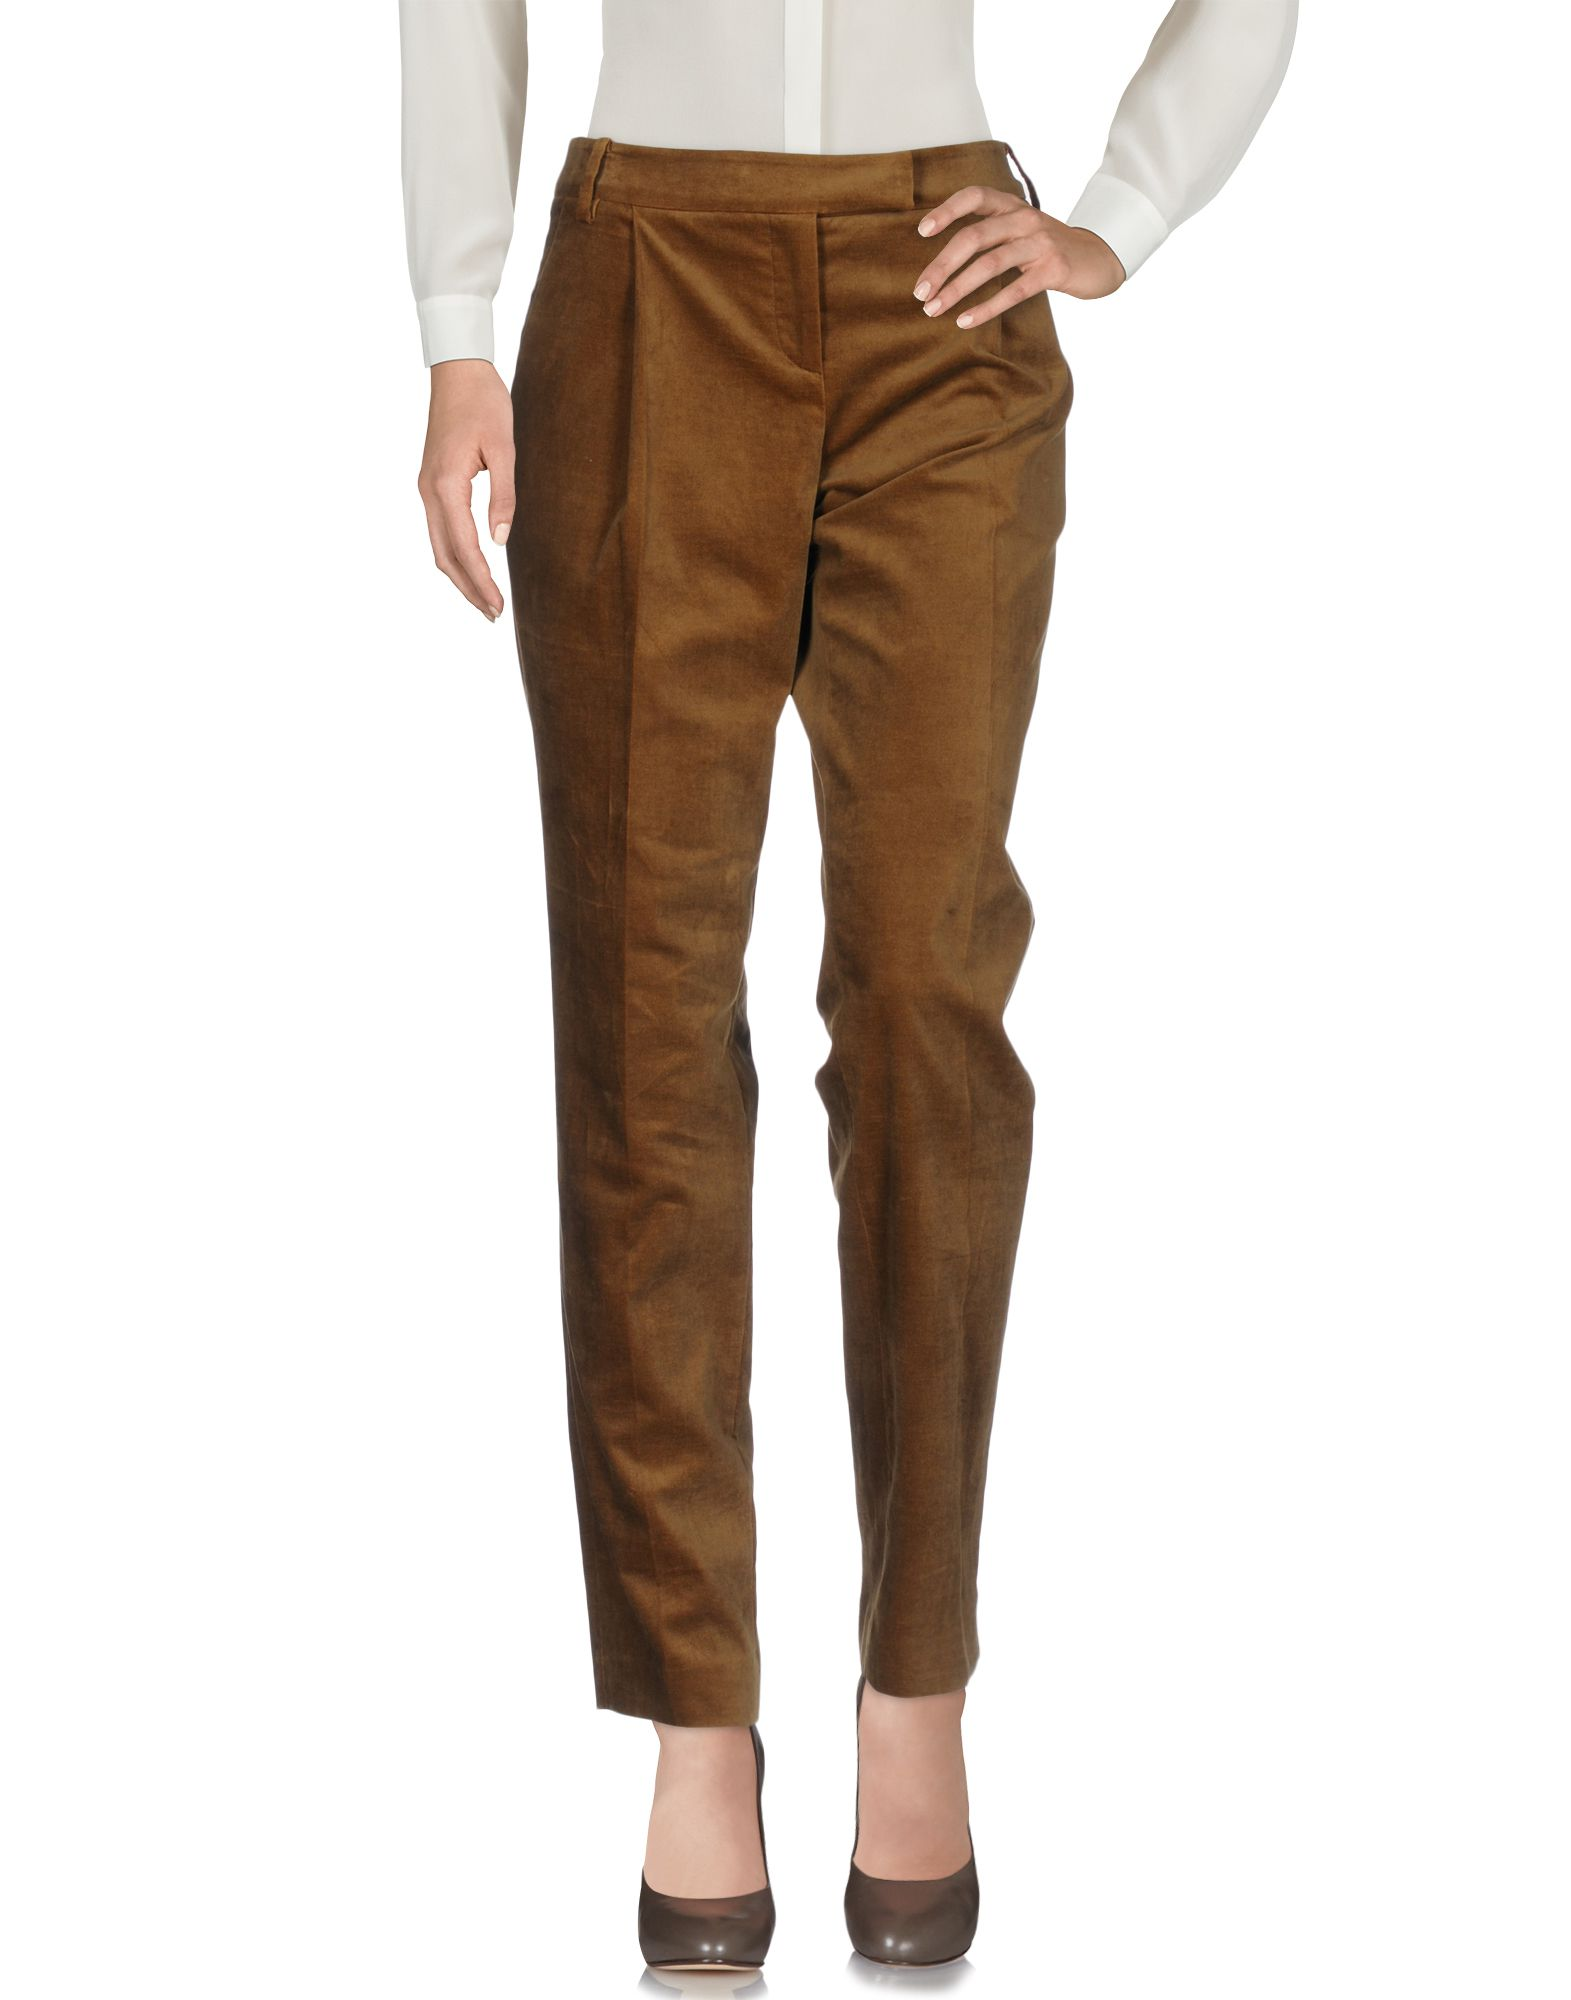 GALITZINE Casual Pants in Khaki